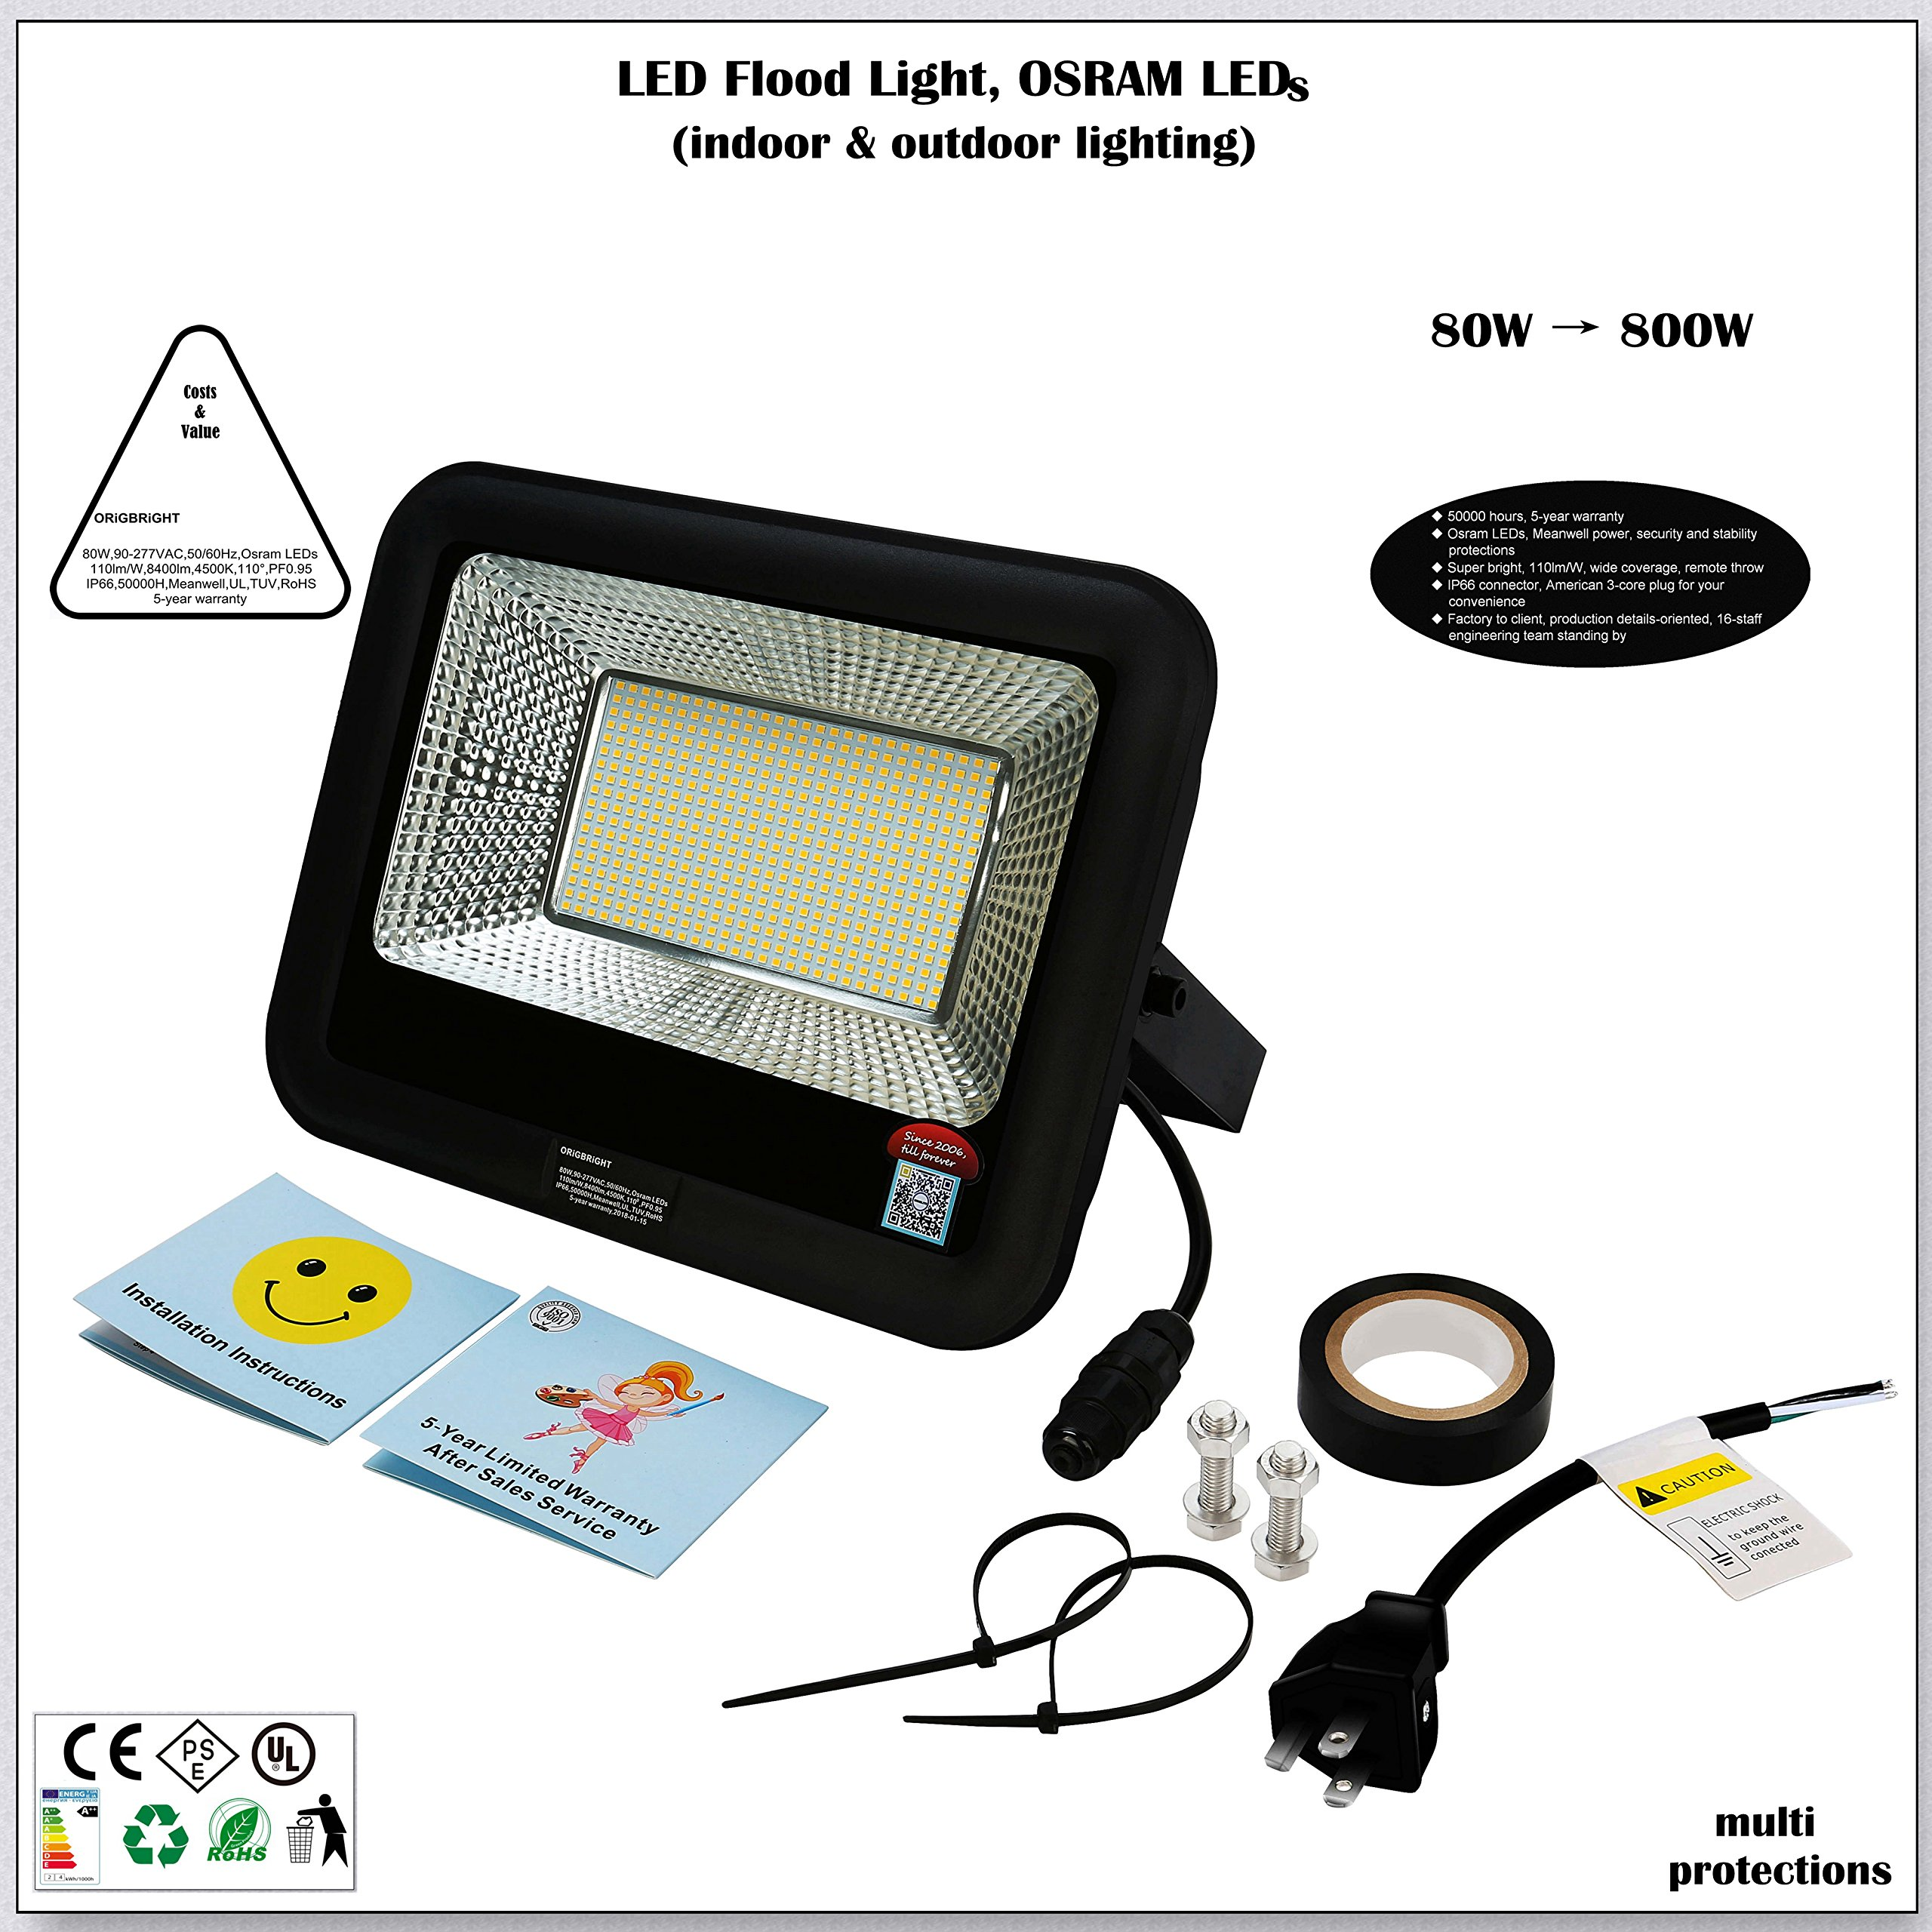 80W LED Flood Light, Work Light, Osram LED, 118lm/W 9252lm, 4500K, Meanwell Power, IP66,UL, 5-Year Warranty, Stability & Security Protections, US Plug, for Indoor,Outdoor, Baseball Field, Tennis Court